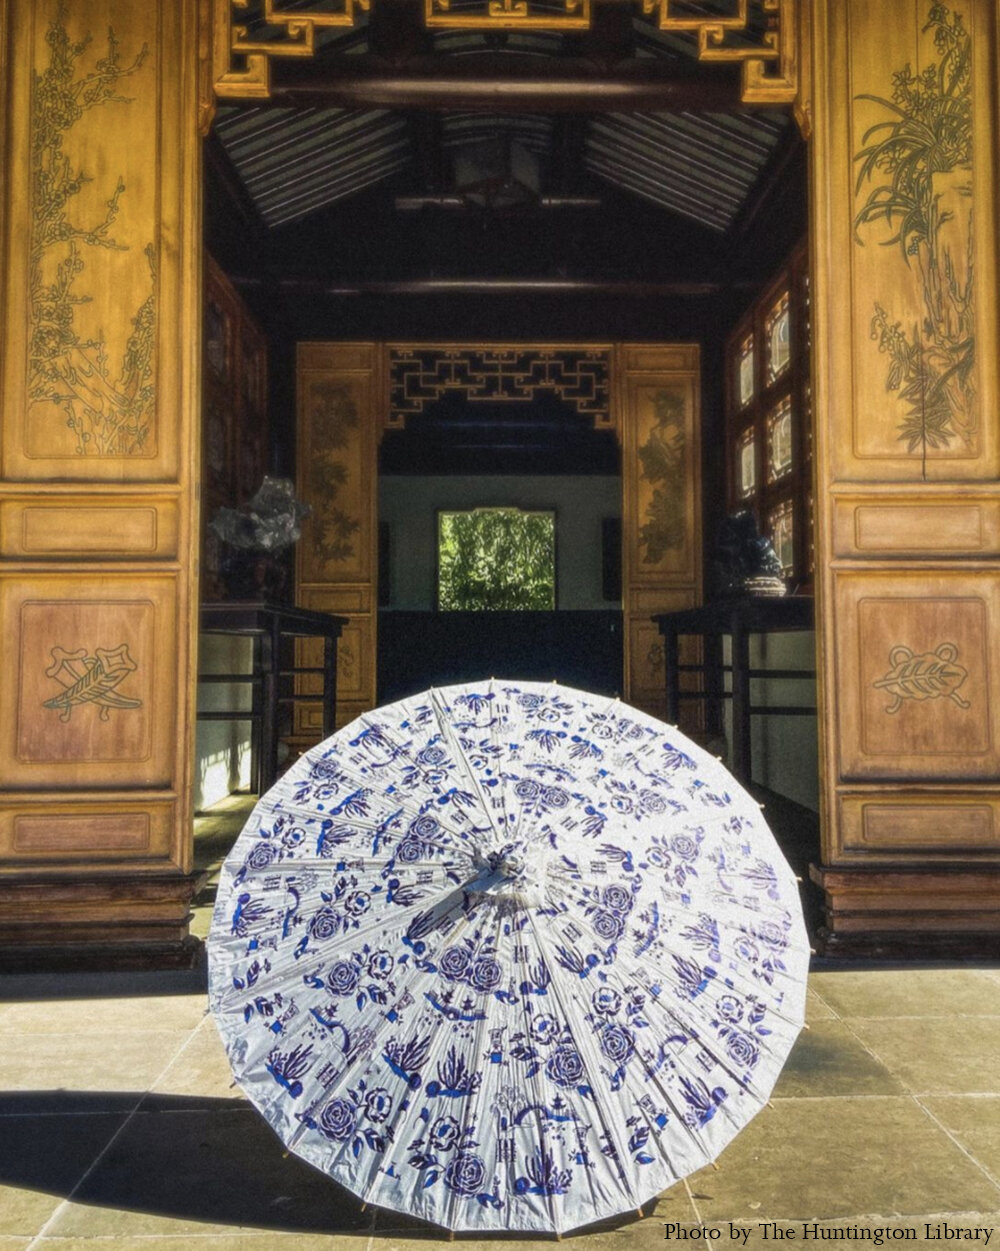 The Huntington parasol